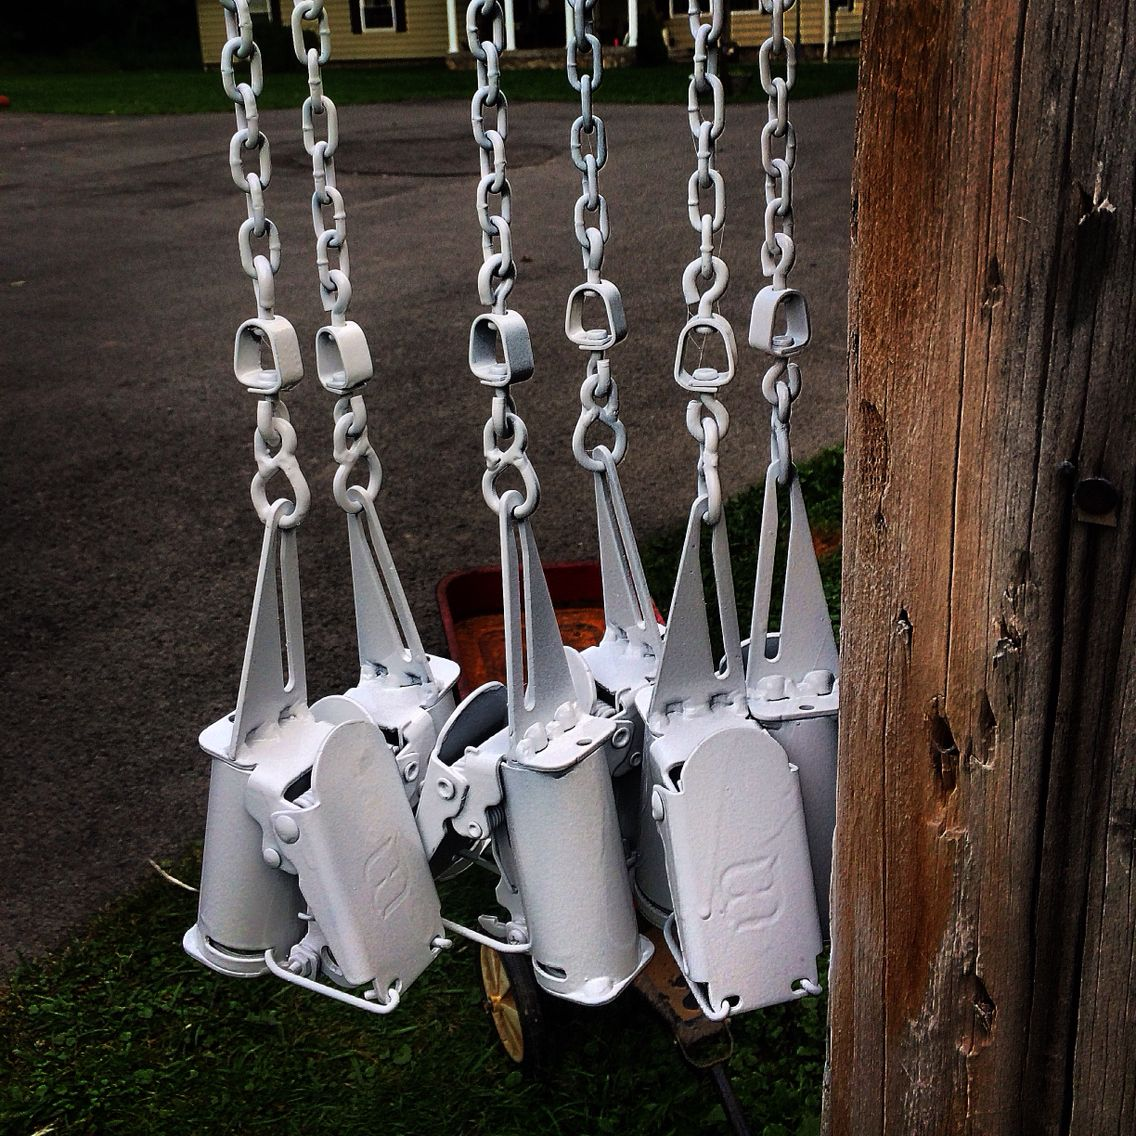 Freedom Dp S Dxporker Traps Outdoor Decor Wind Chimes